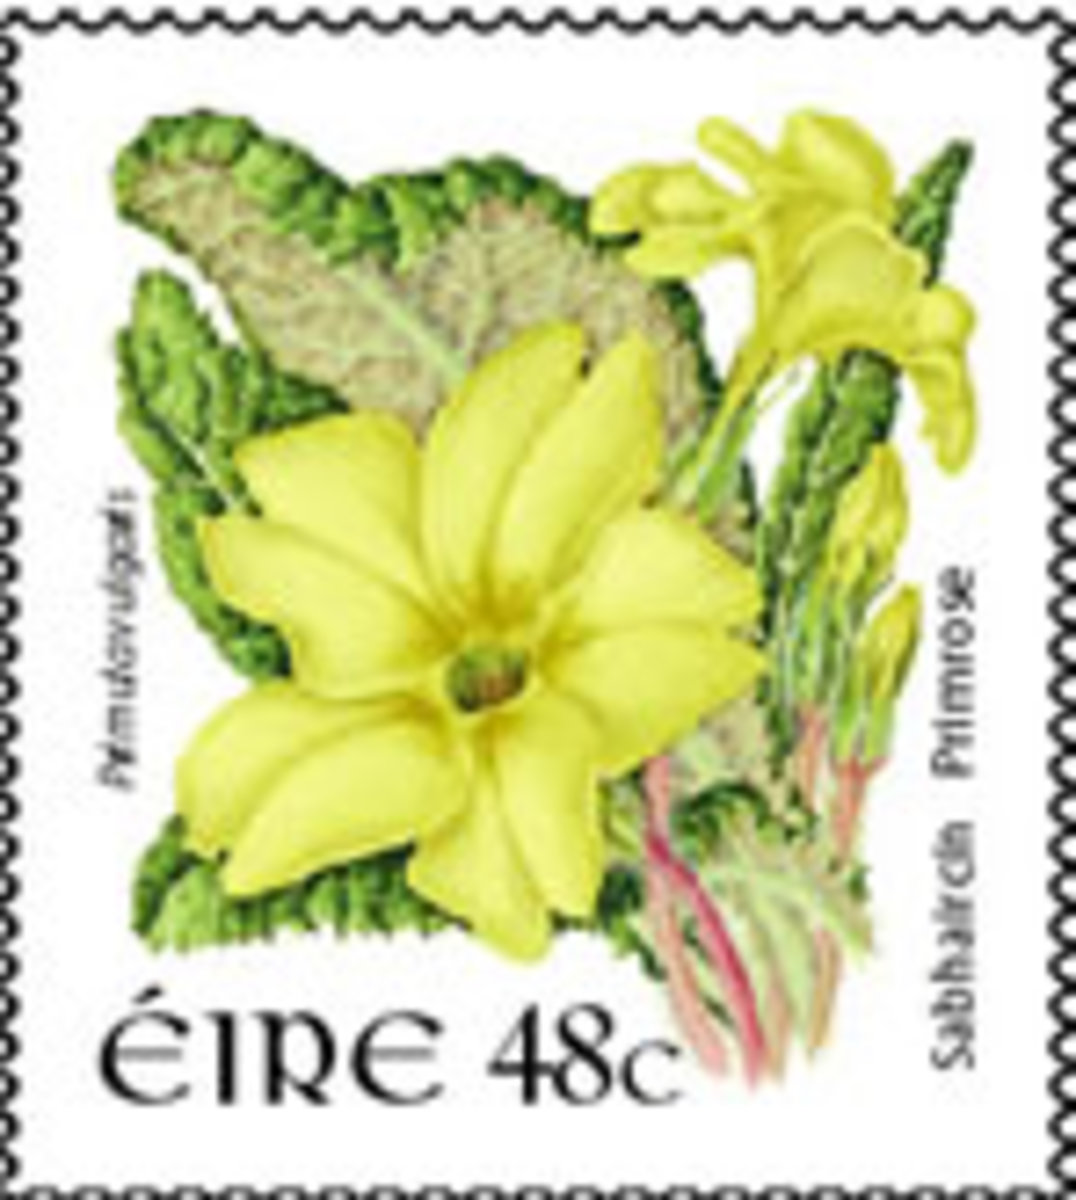 Irish postal stamp with  Eire - the original name for the Ireland which evolved from Old Irish Eriu.